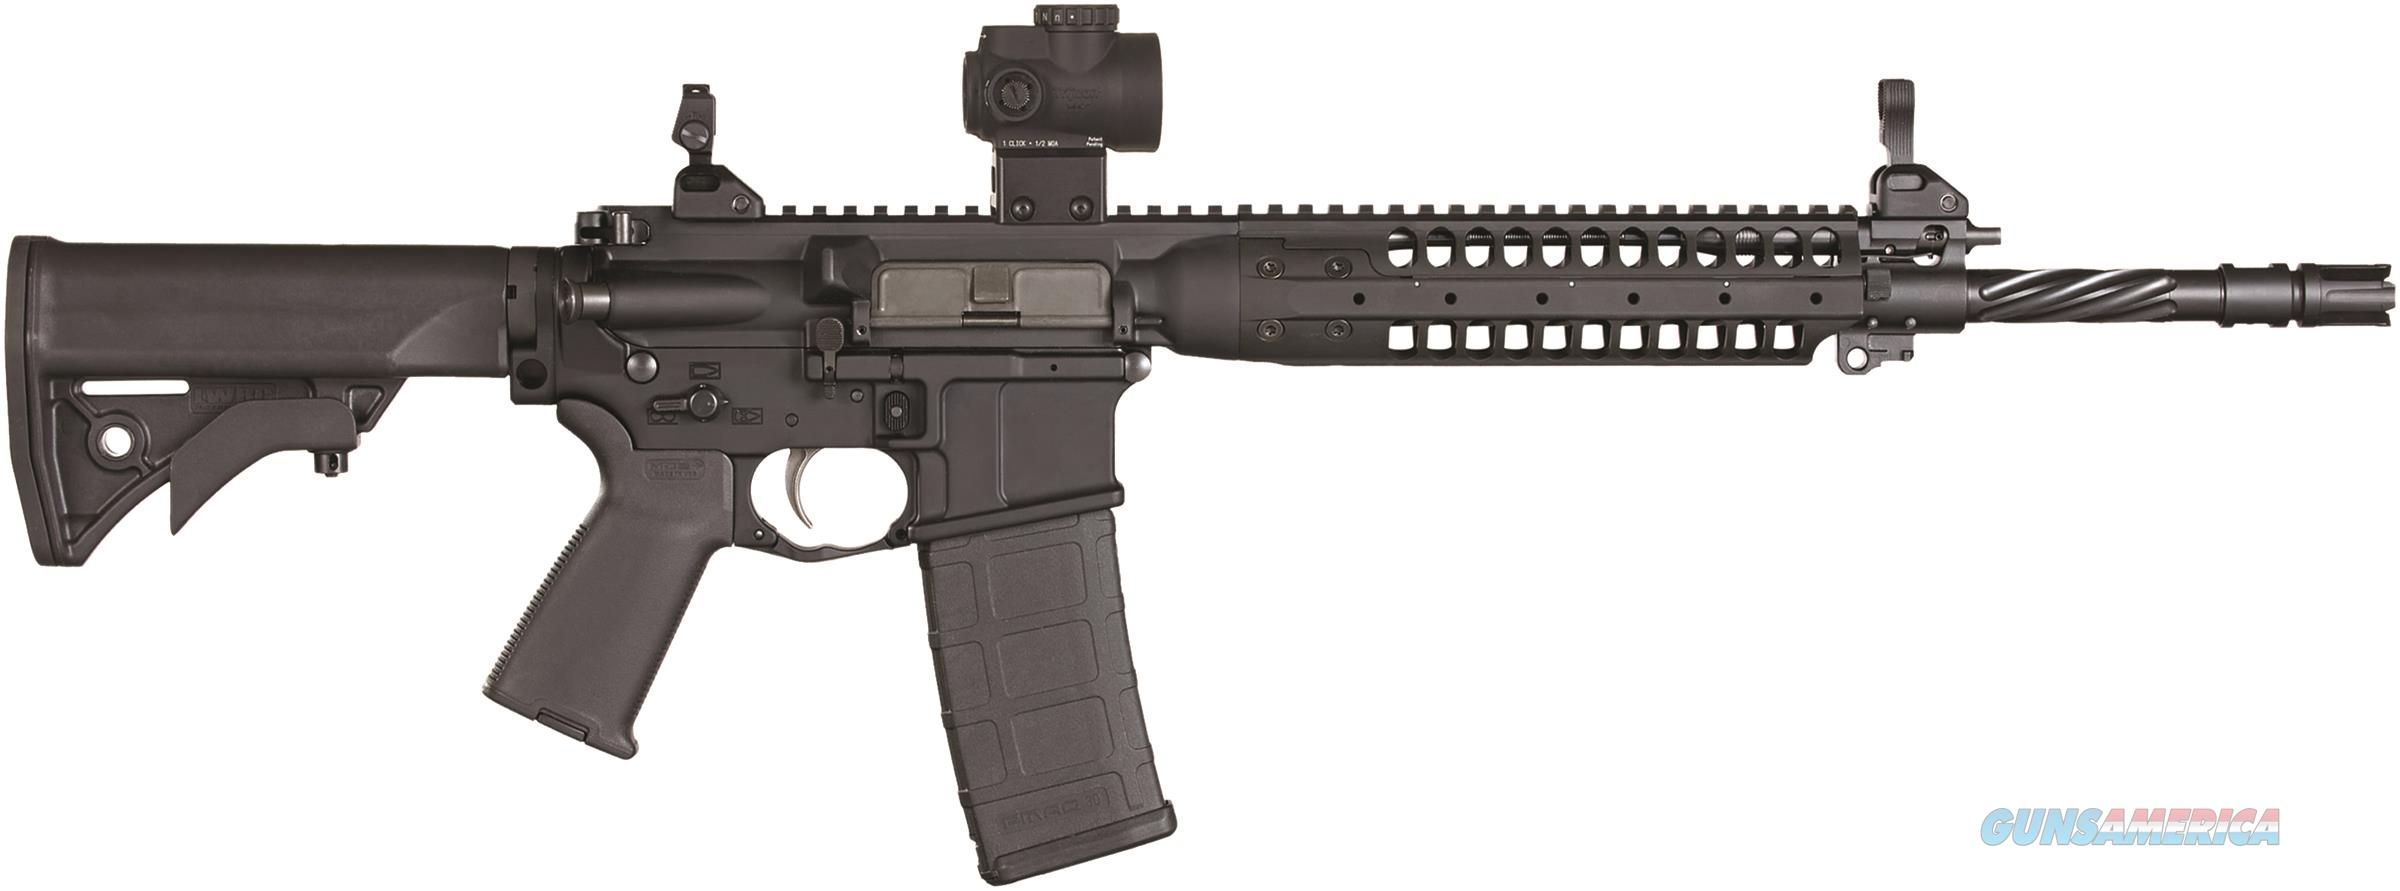 Lwrc Ic Enhan 5.56Mm 16 Blk Trij Mro Flip Sights ICE5R5B16MRO  Guns > Rifles > L Misc Rifles